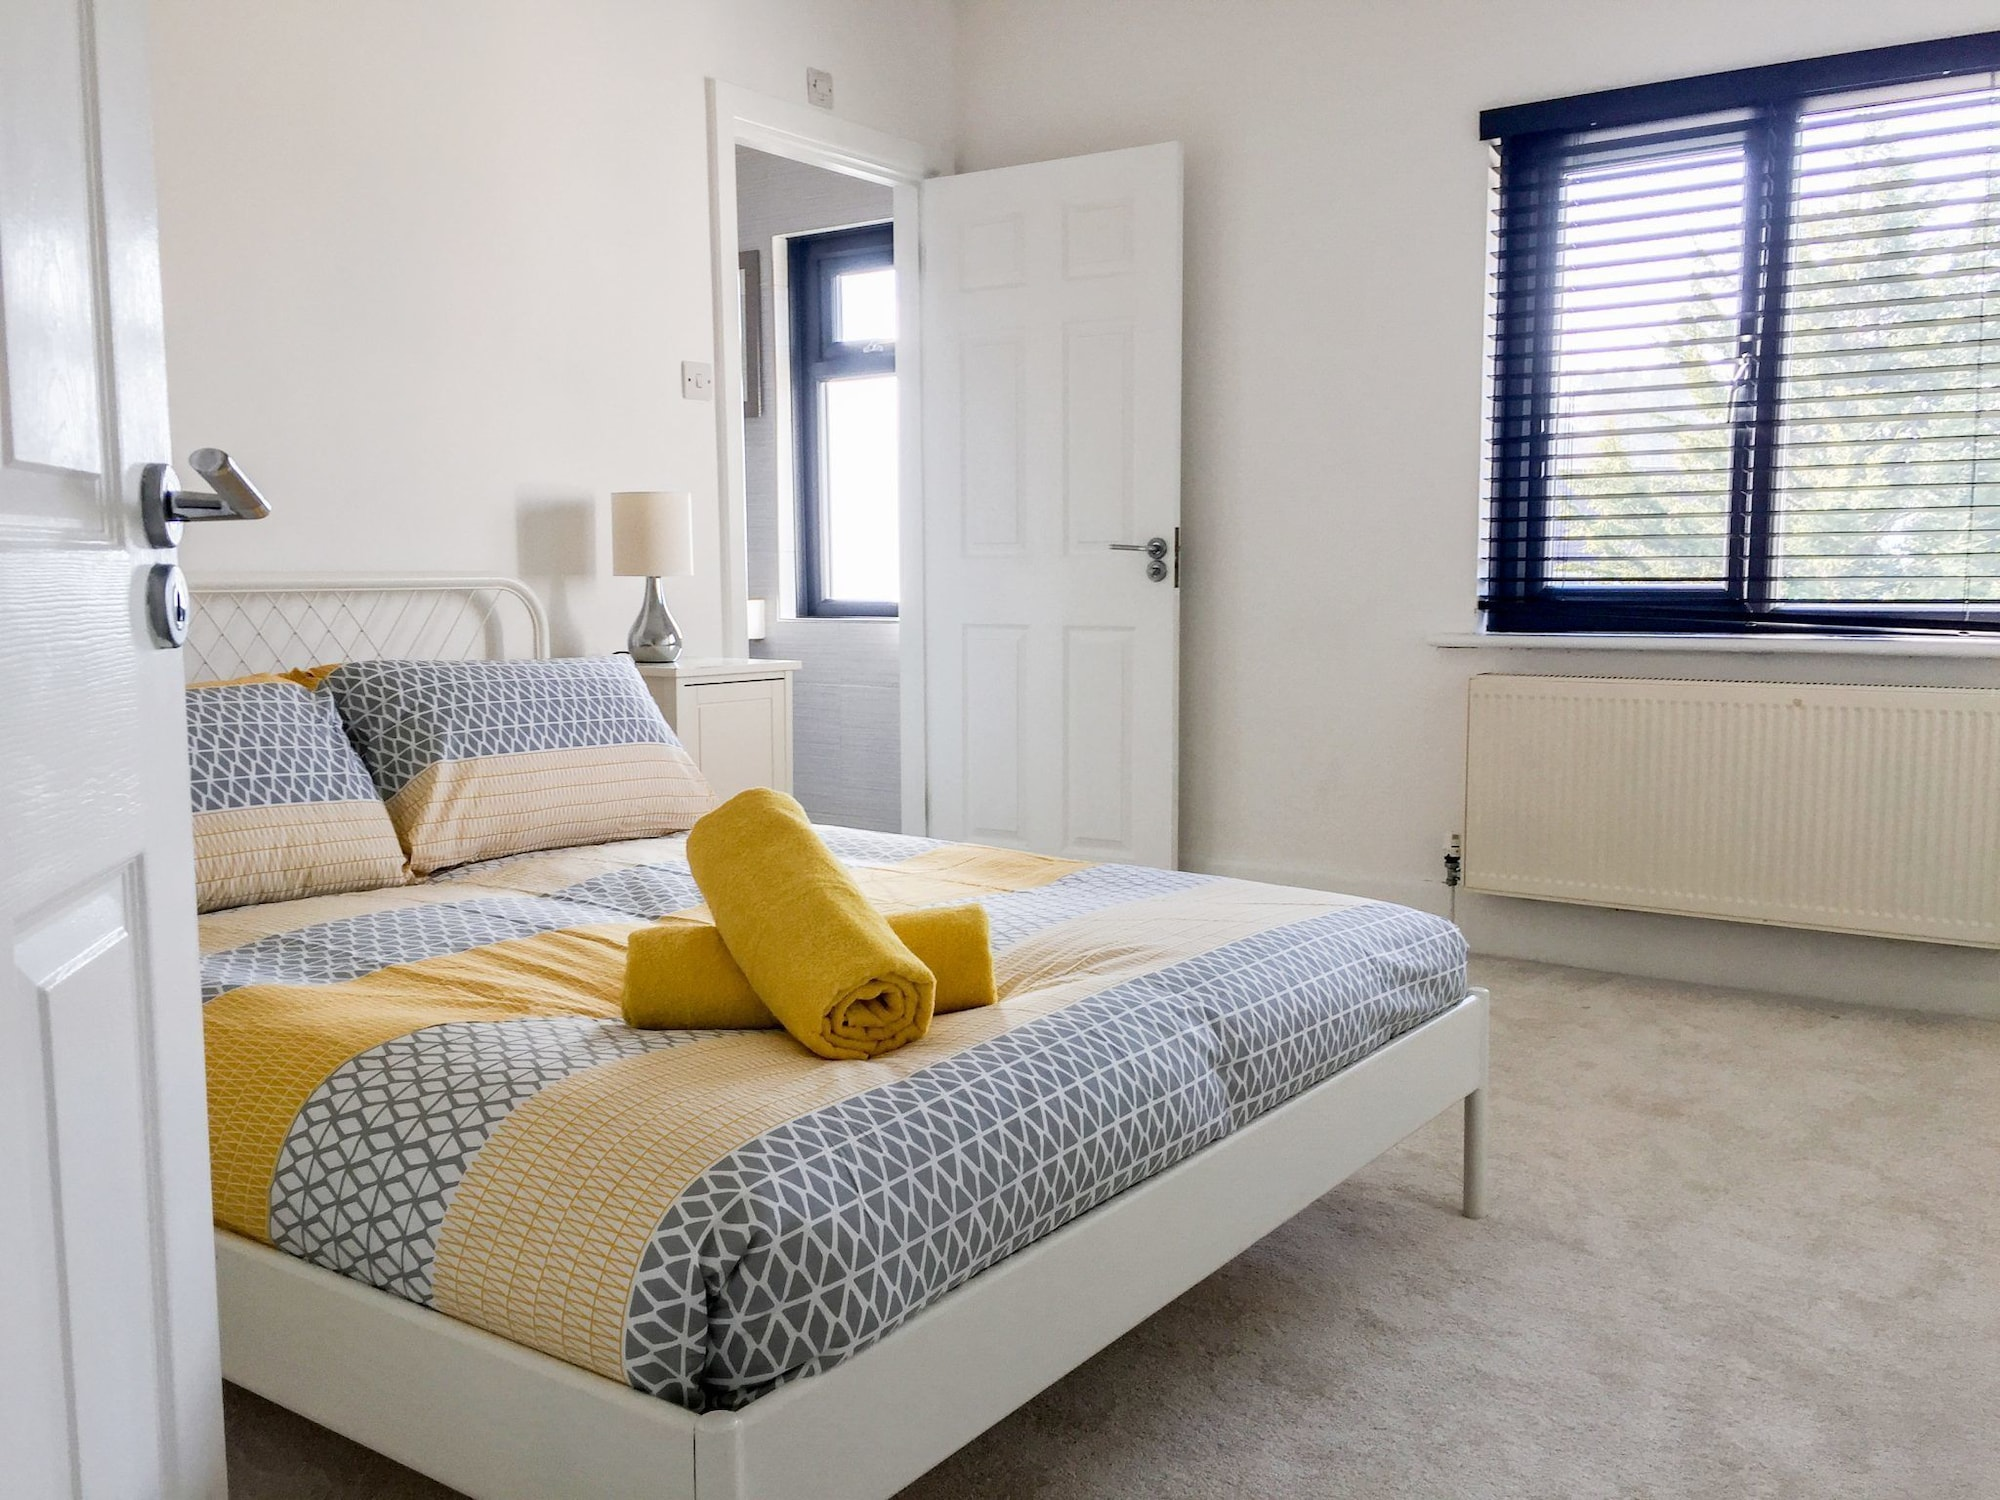 Deluxe Contemporary House - DHH, Poole